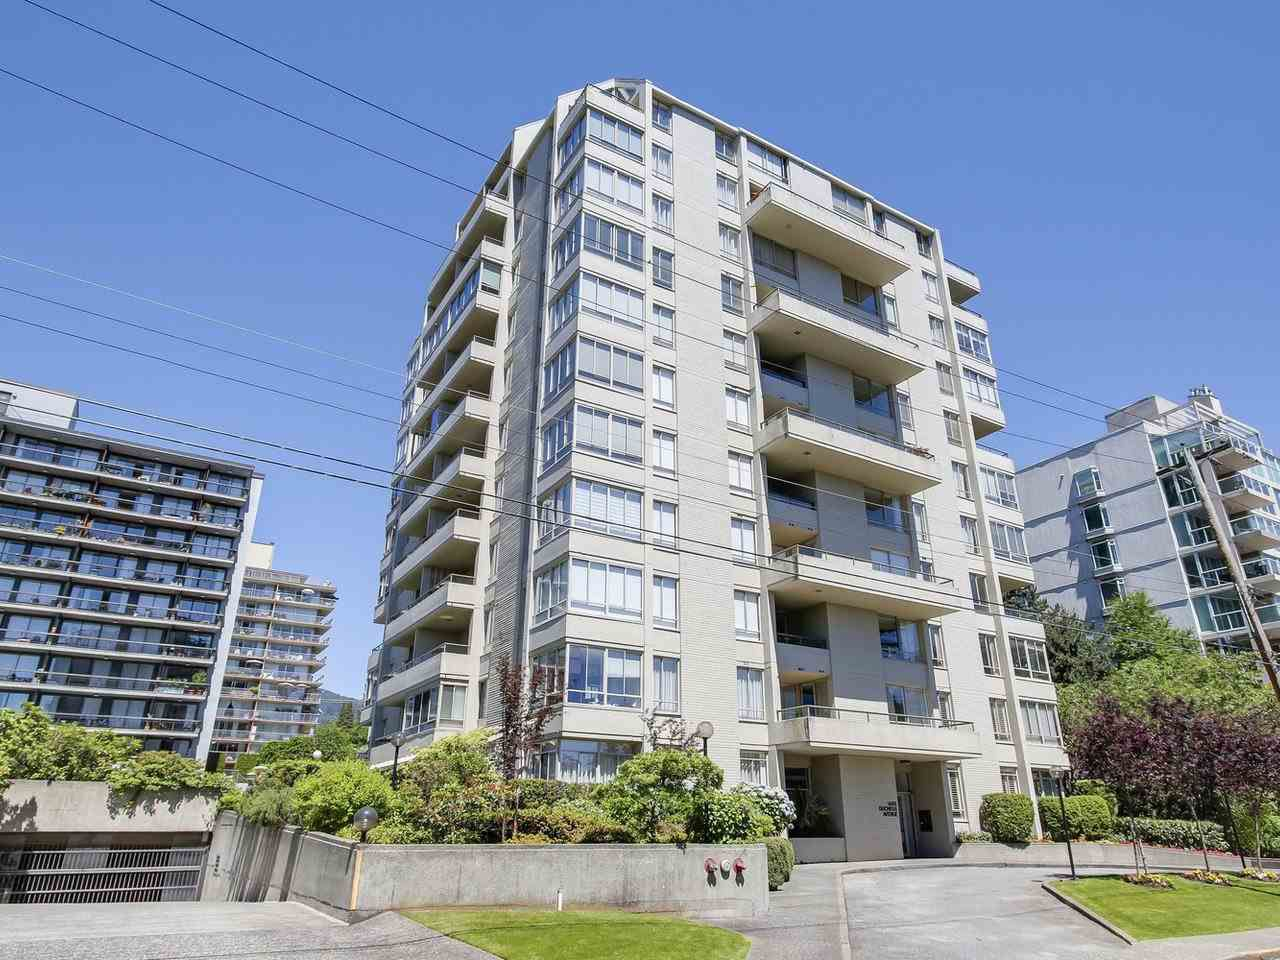 """Main Photo: 201 1485 DUCHESS Avenue in West Vancouver: Ambleside Condo for sale in """"The Mermaid"""" : MLS®# R2181837"""